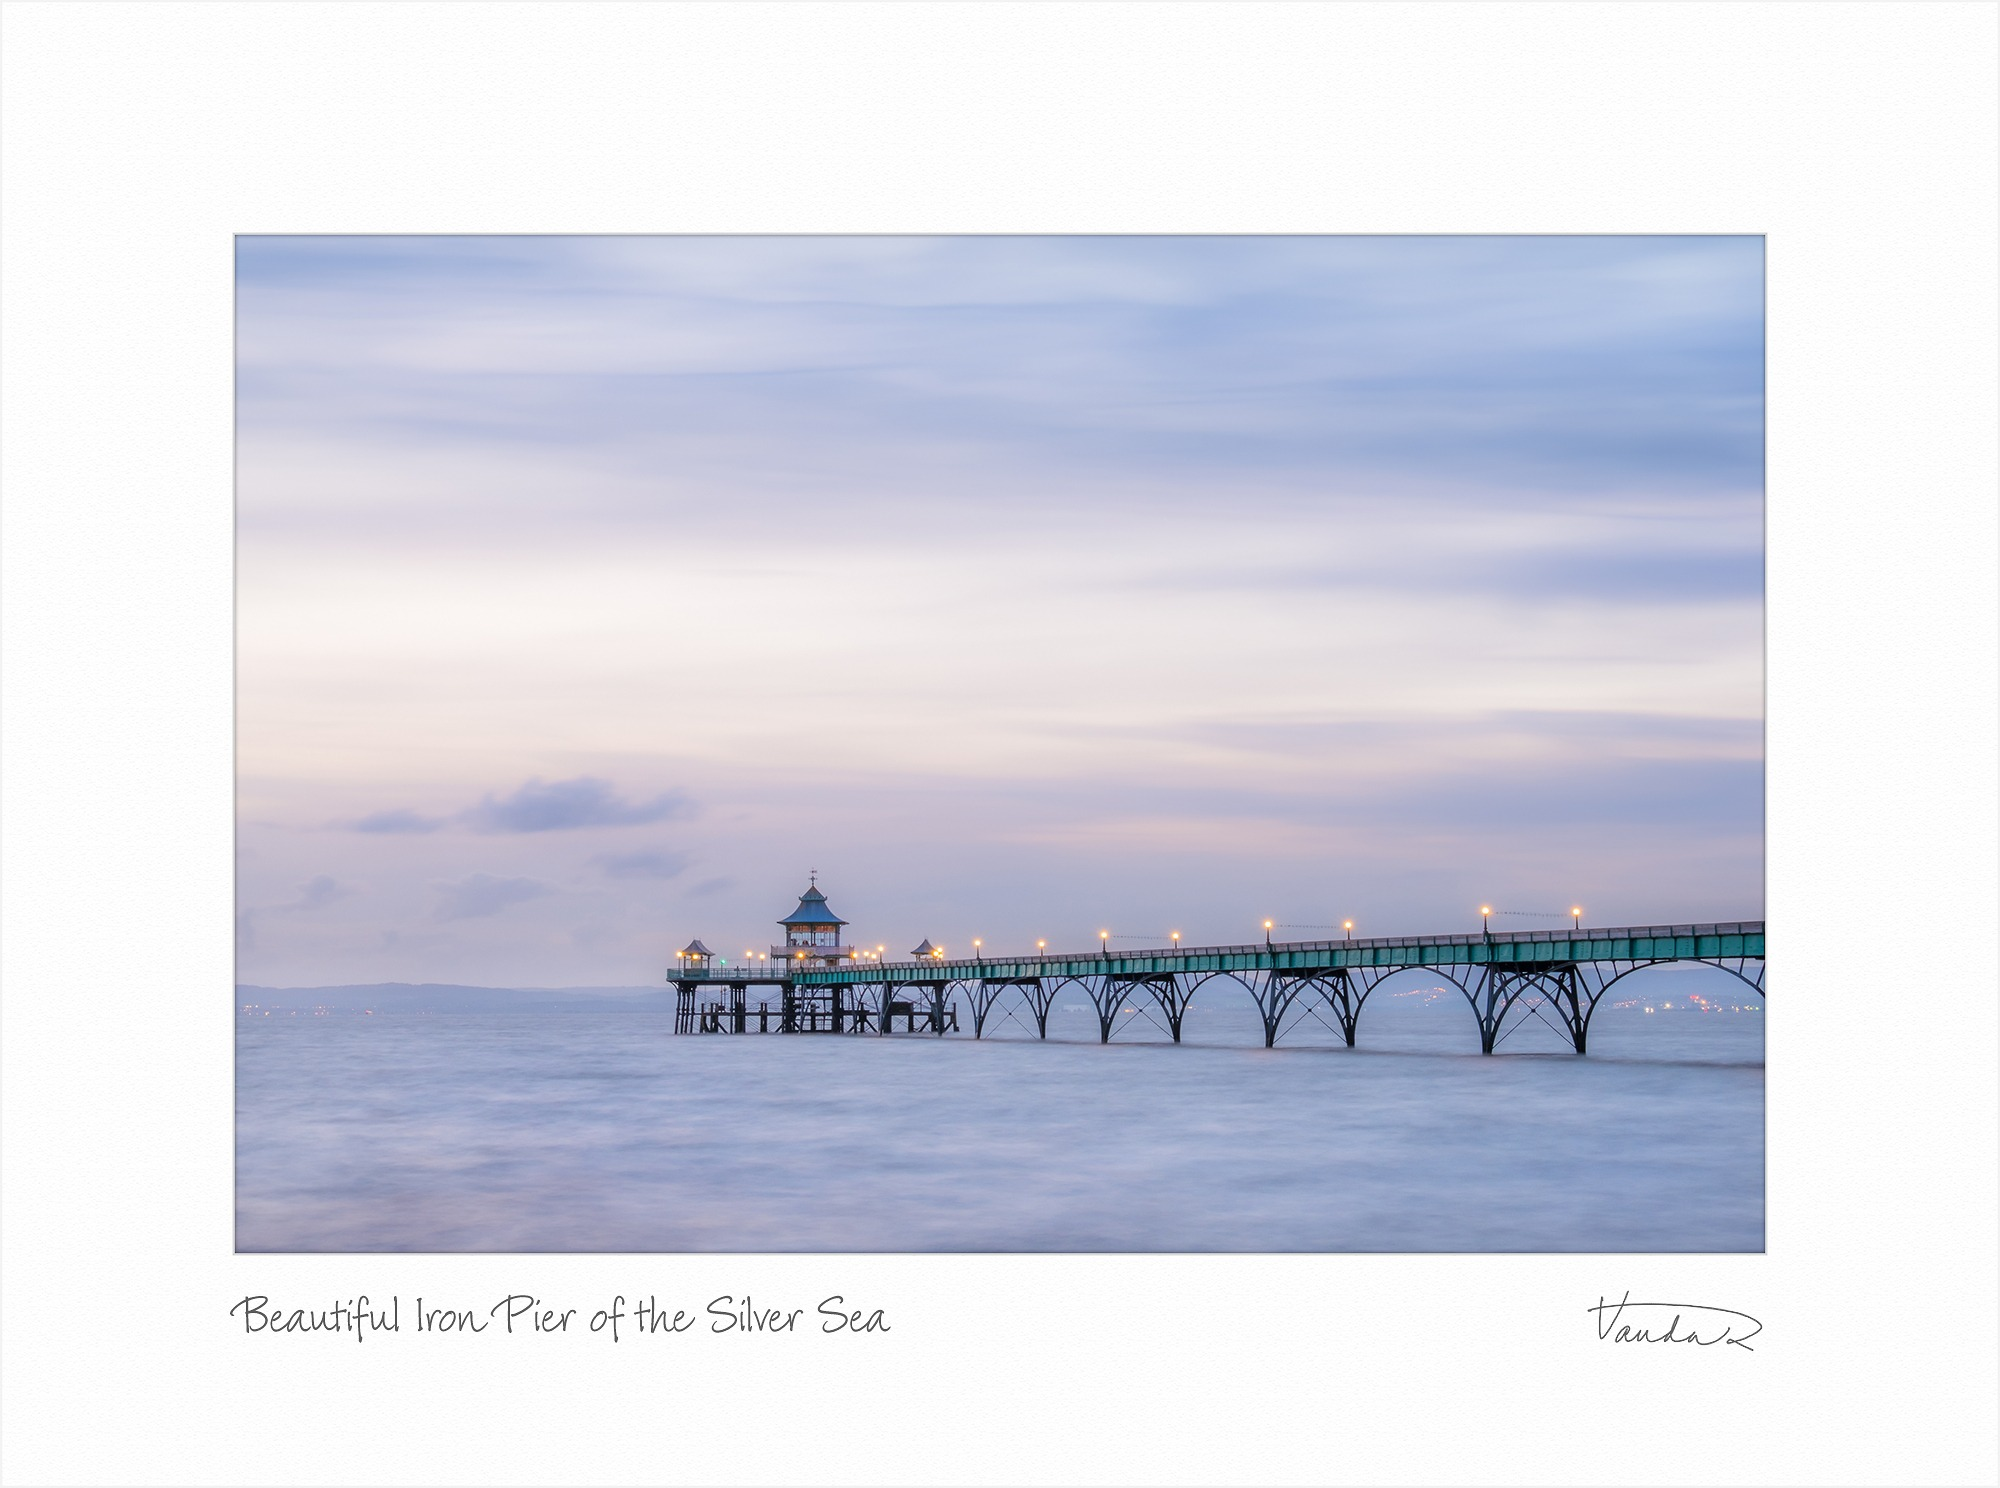 Beautiful Iron Pier of the Silver Sea